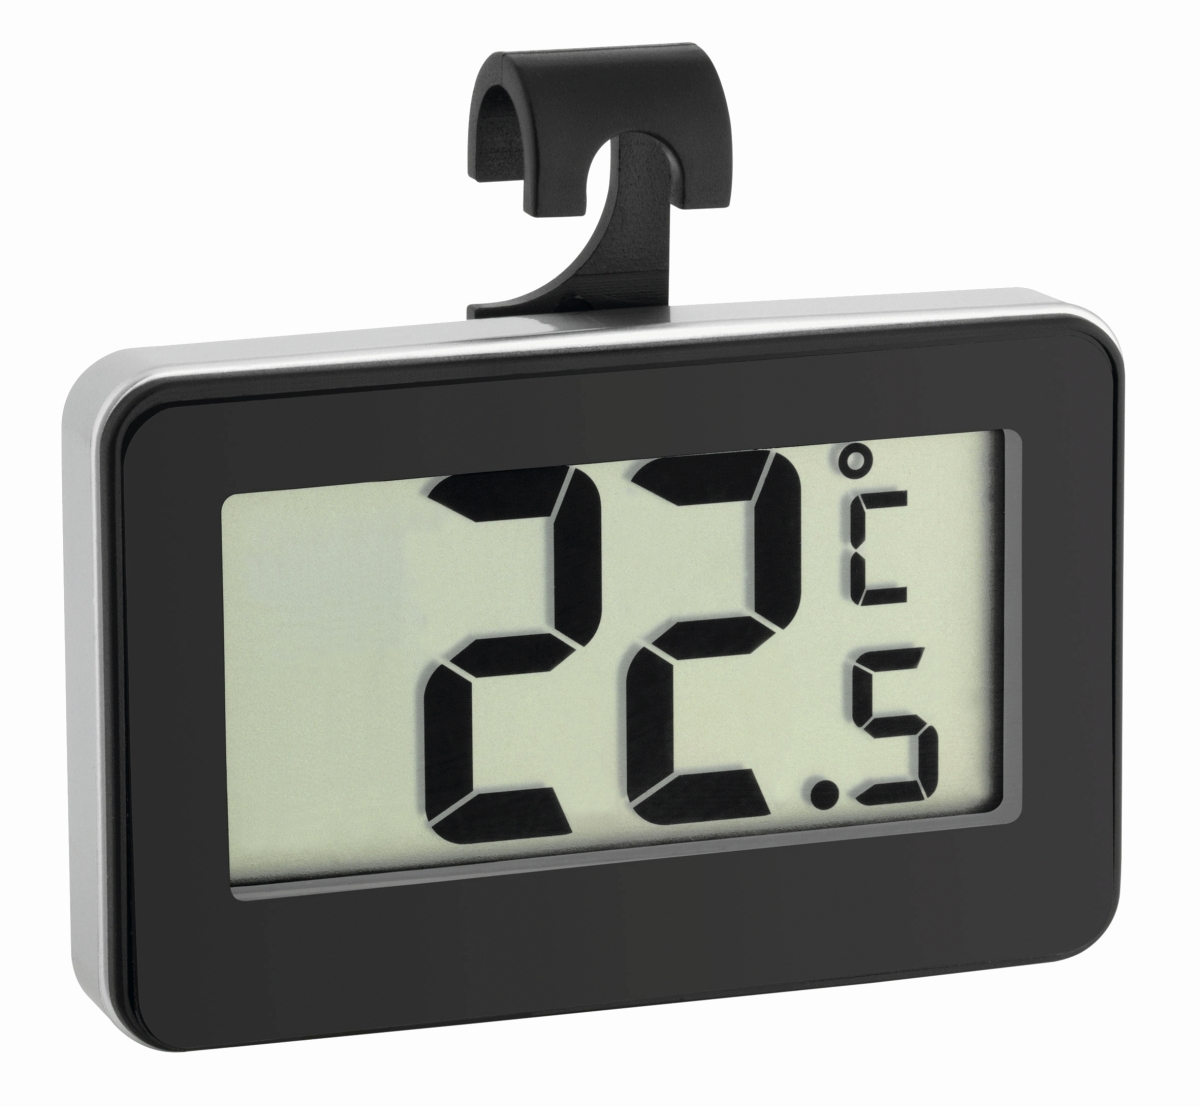 Digitales Thermometer schwarz